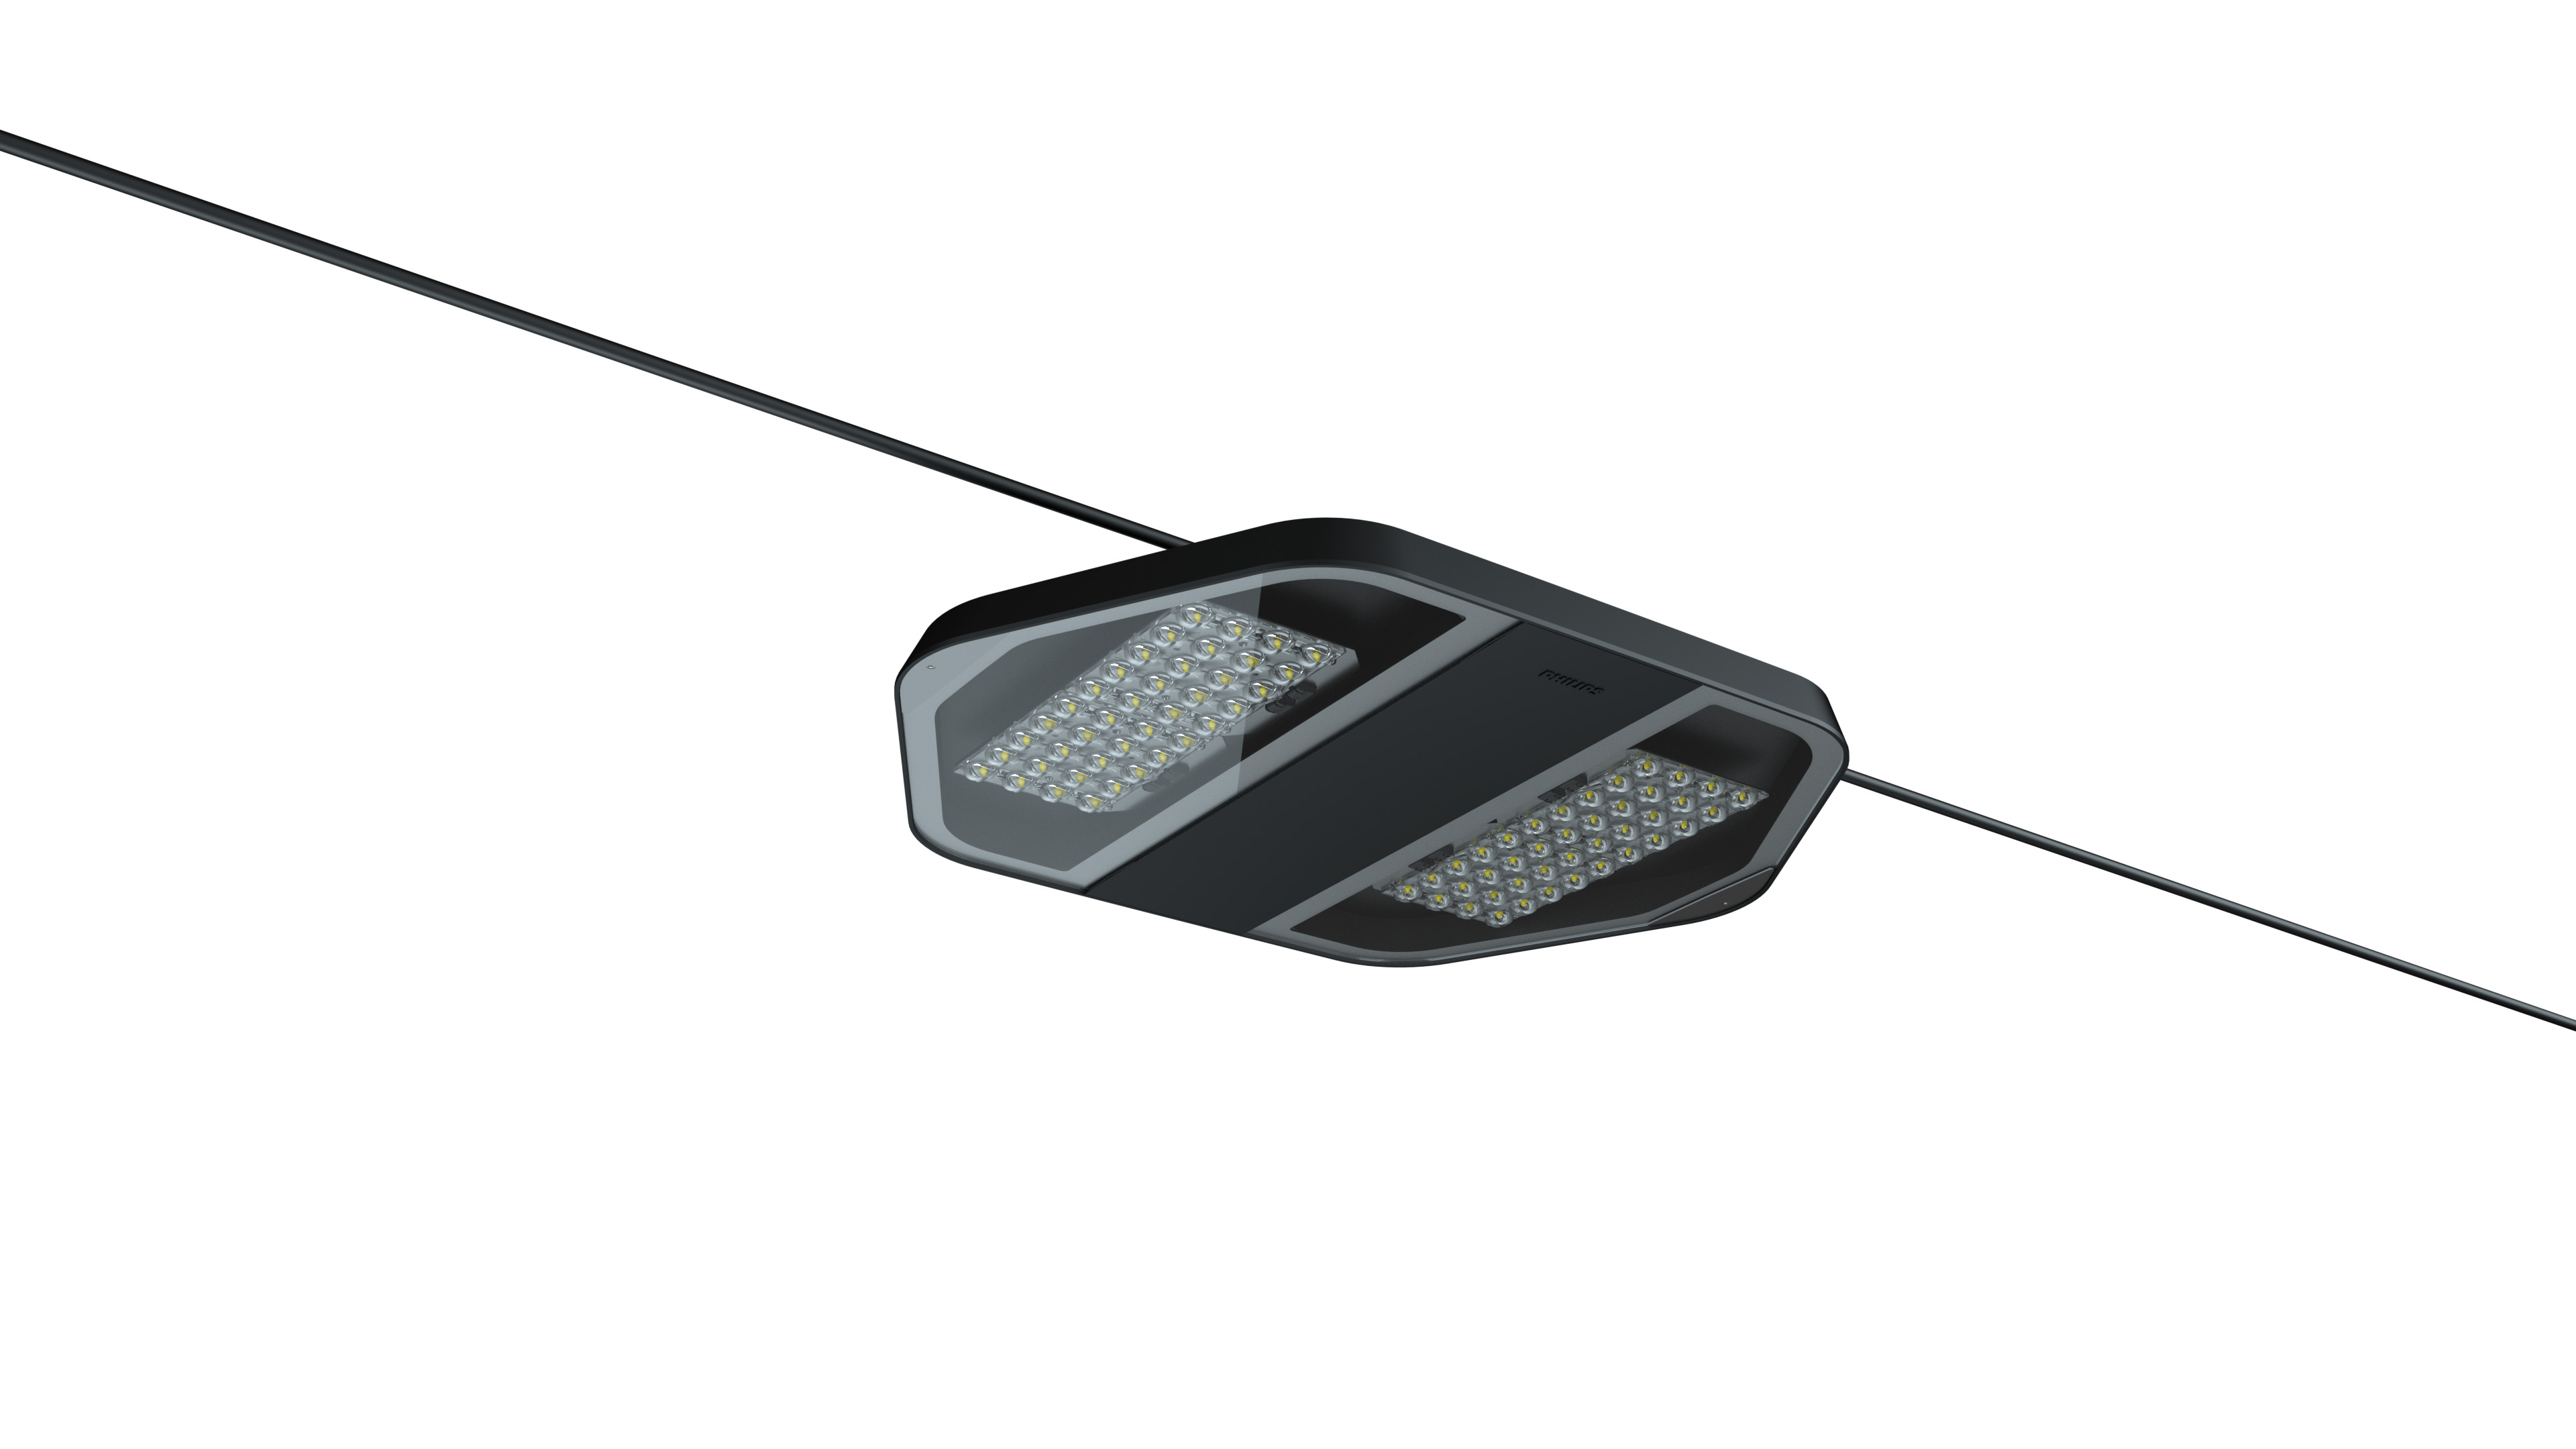 Philips Lighting Launches New Led Family Of Street Lights White Flood Lamp Circuit B2b Electronic Components Download